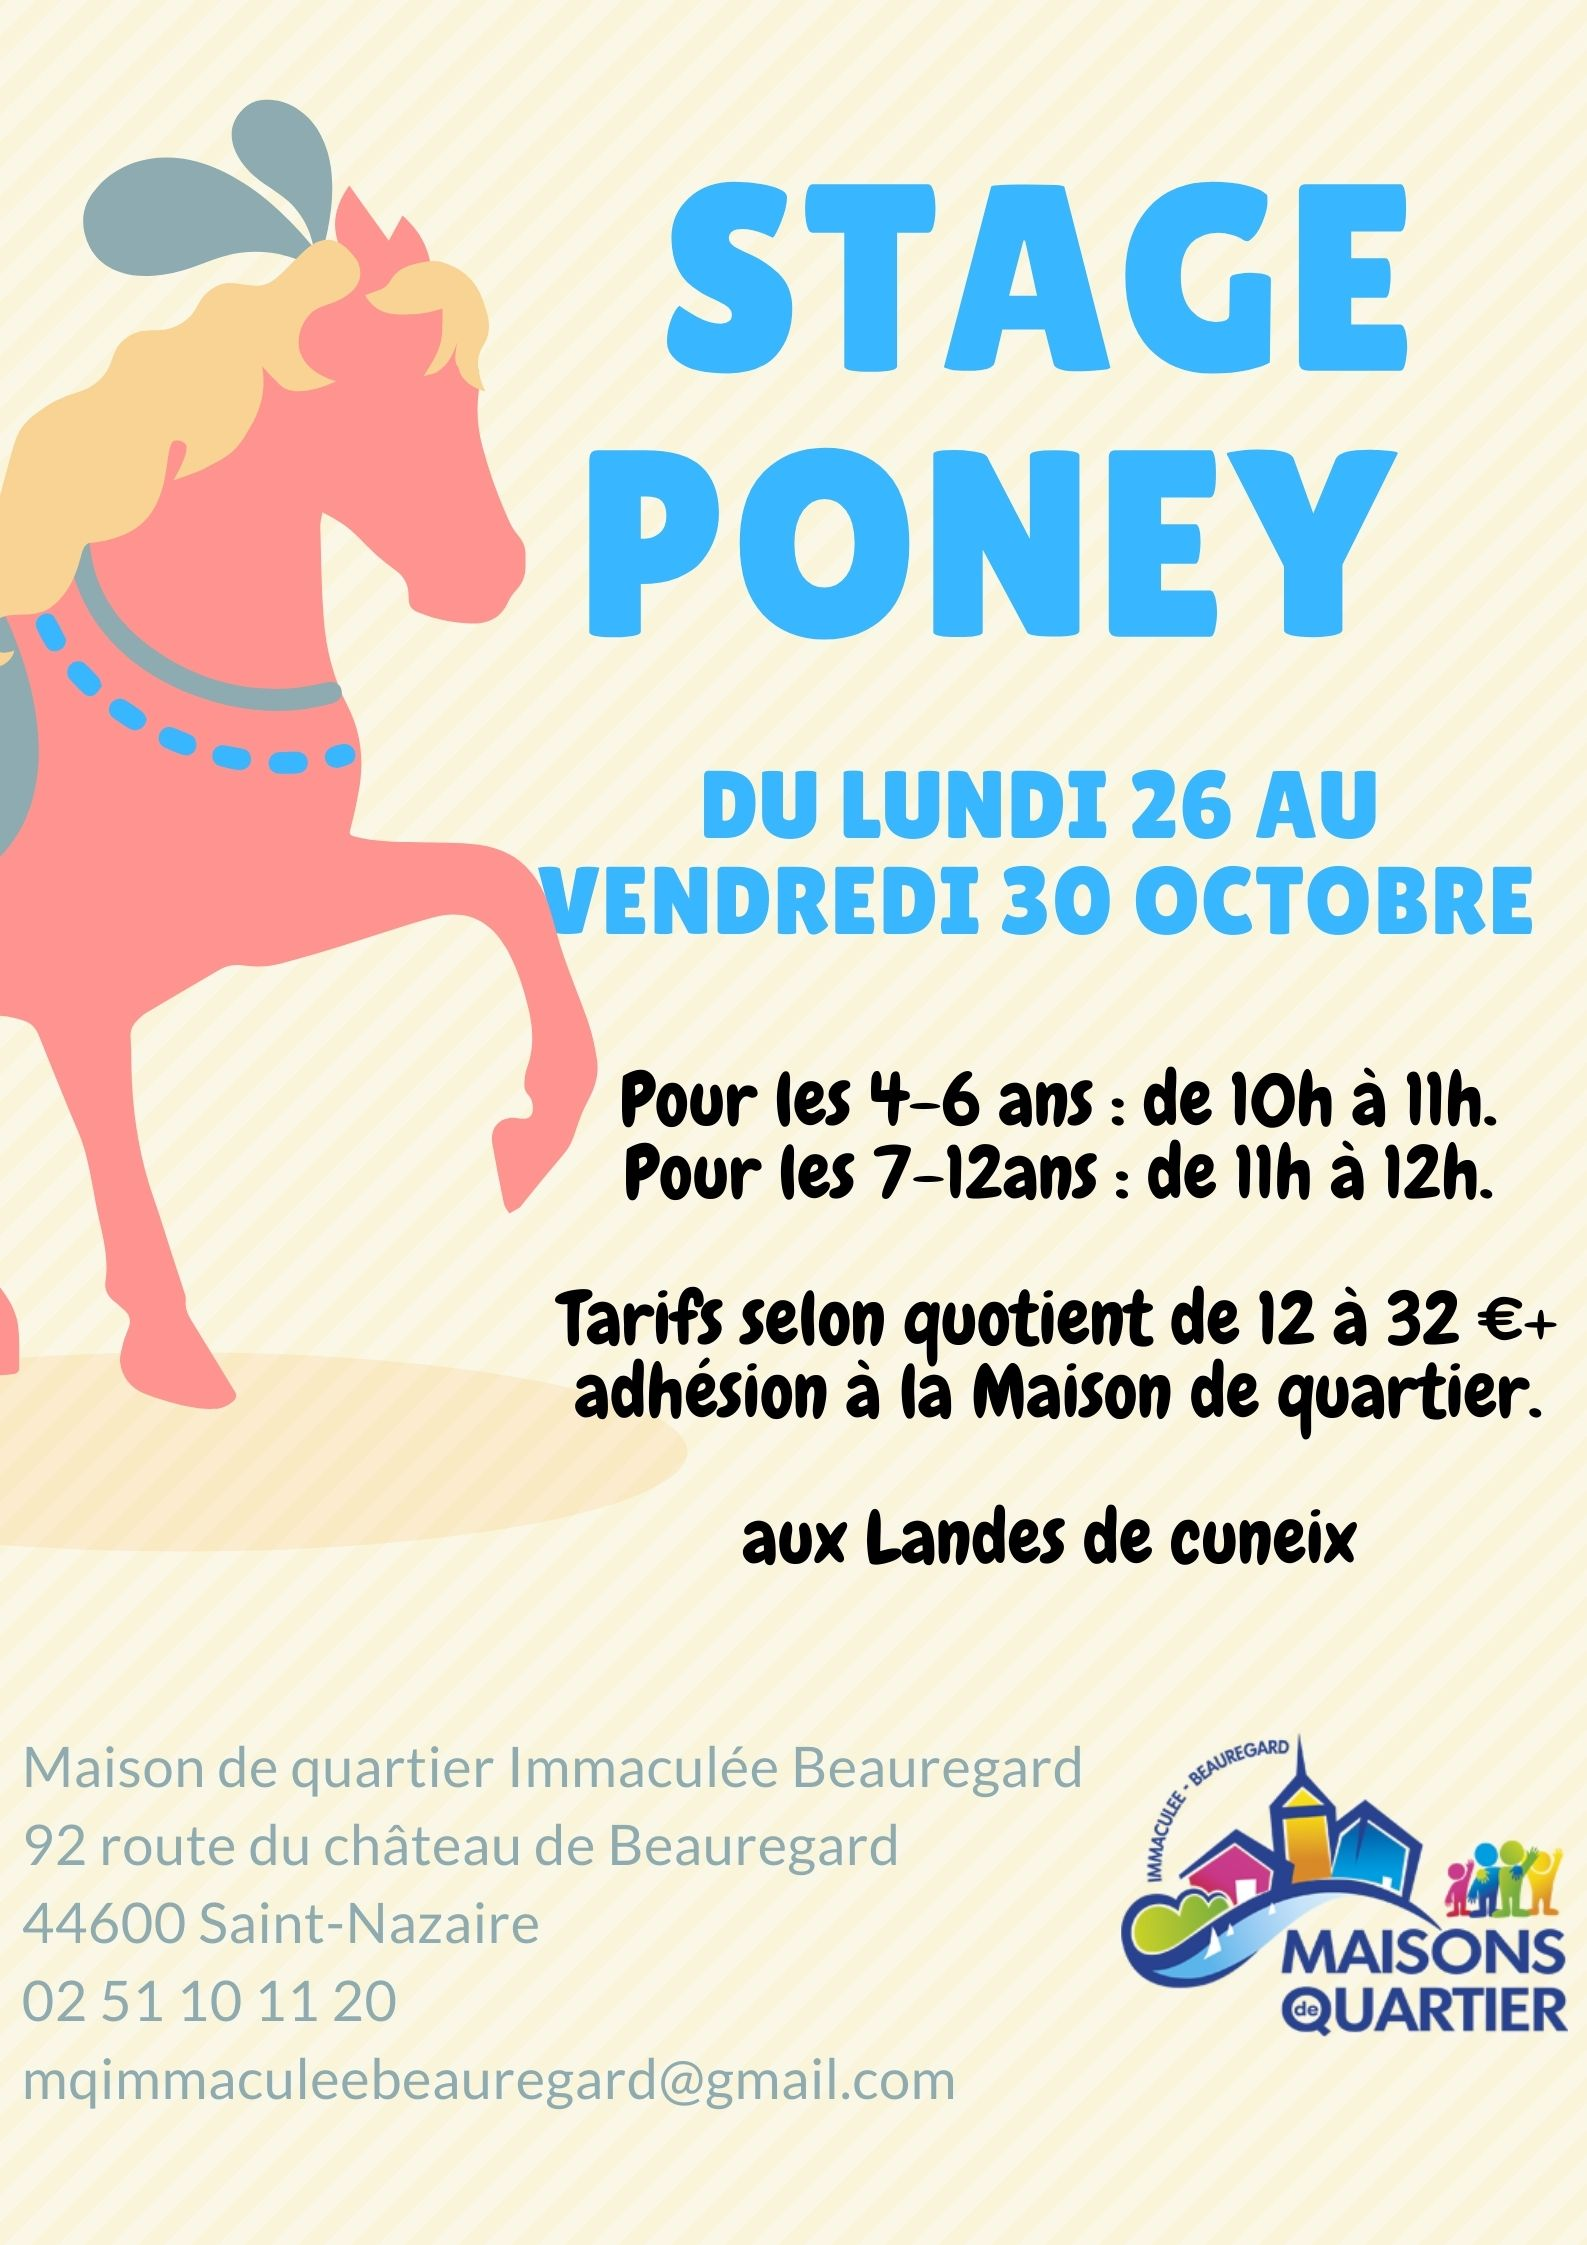 Stage Poney Octobre 2020.jpg